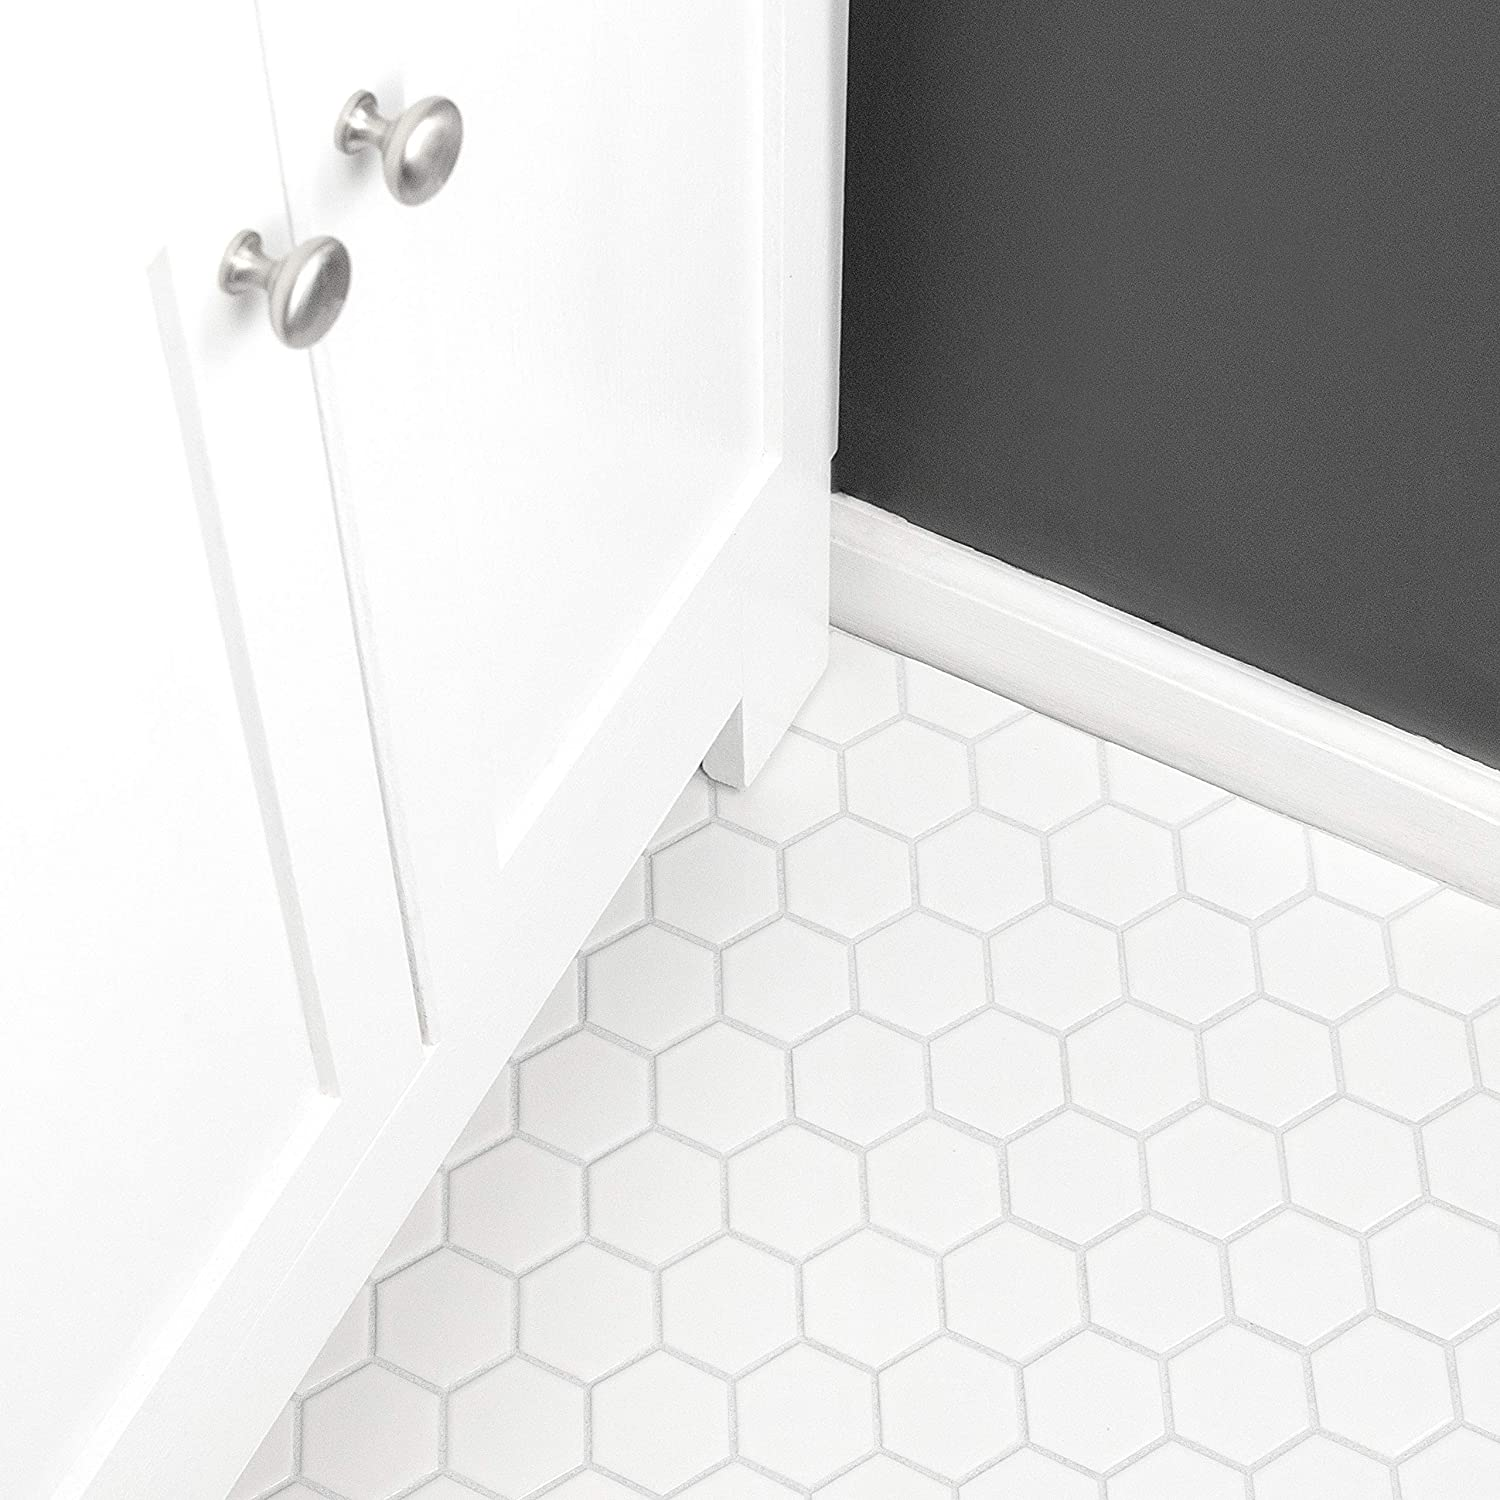 SomerTile FXLM1HMG Retro Hex Floor and Wall Tile